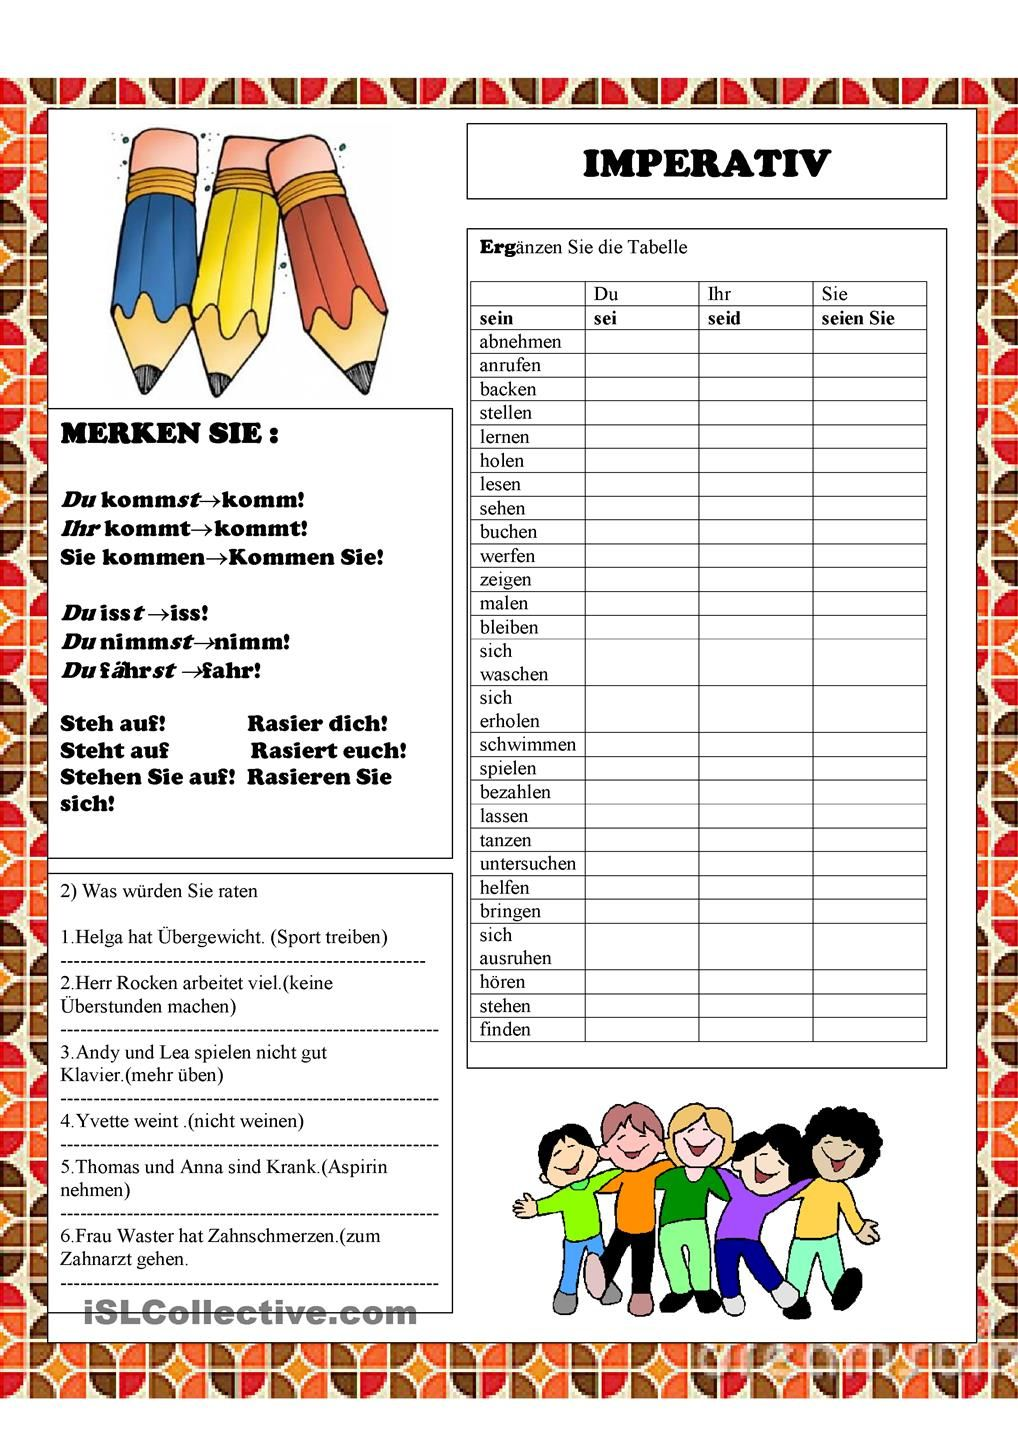 Imperativ | German, Deutsch and Worksheets